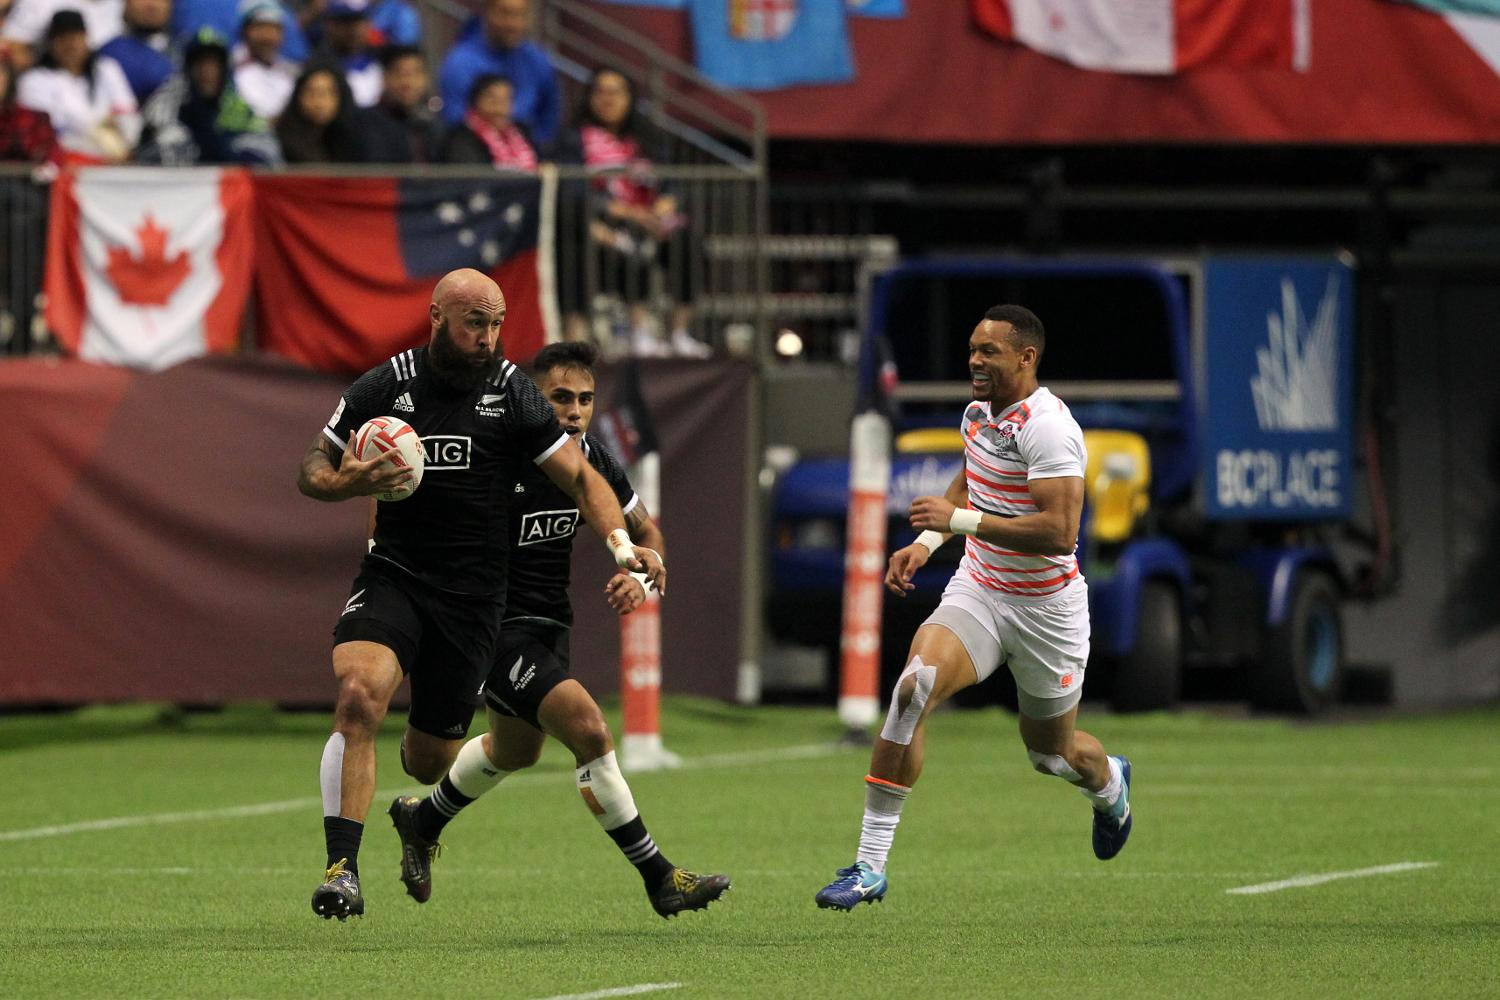 HSBC Canada Sevens - New Zealand v England